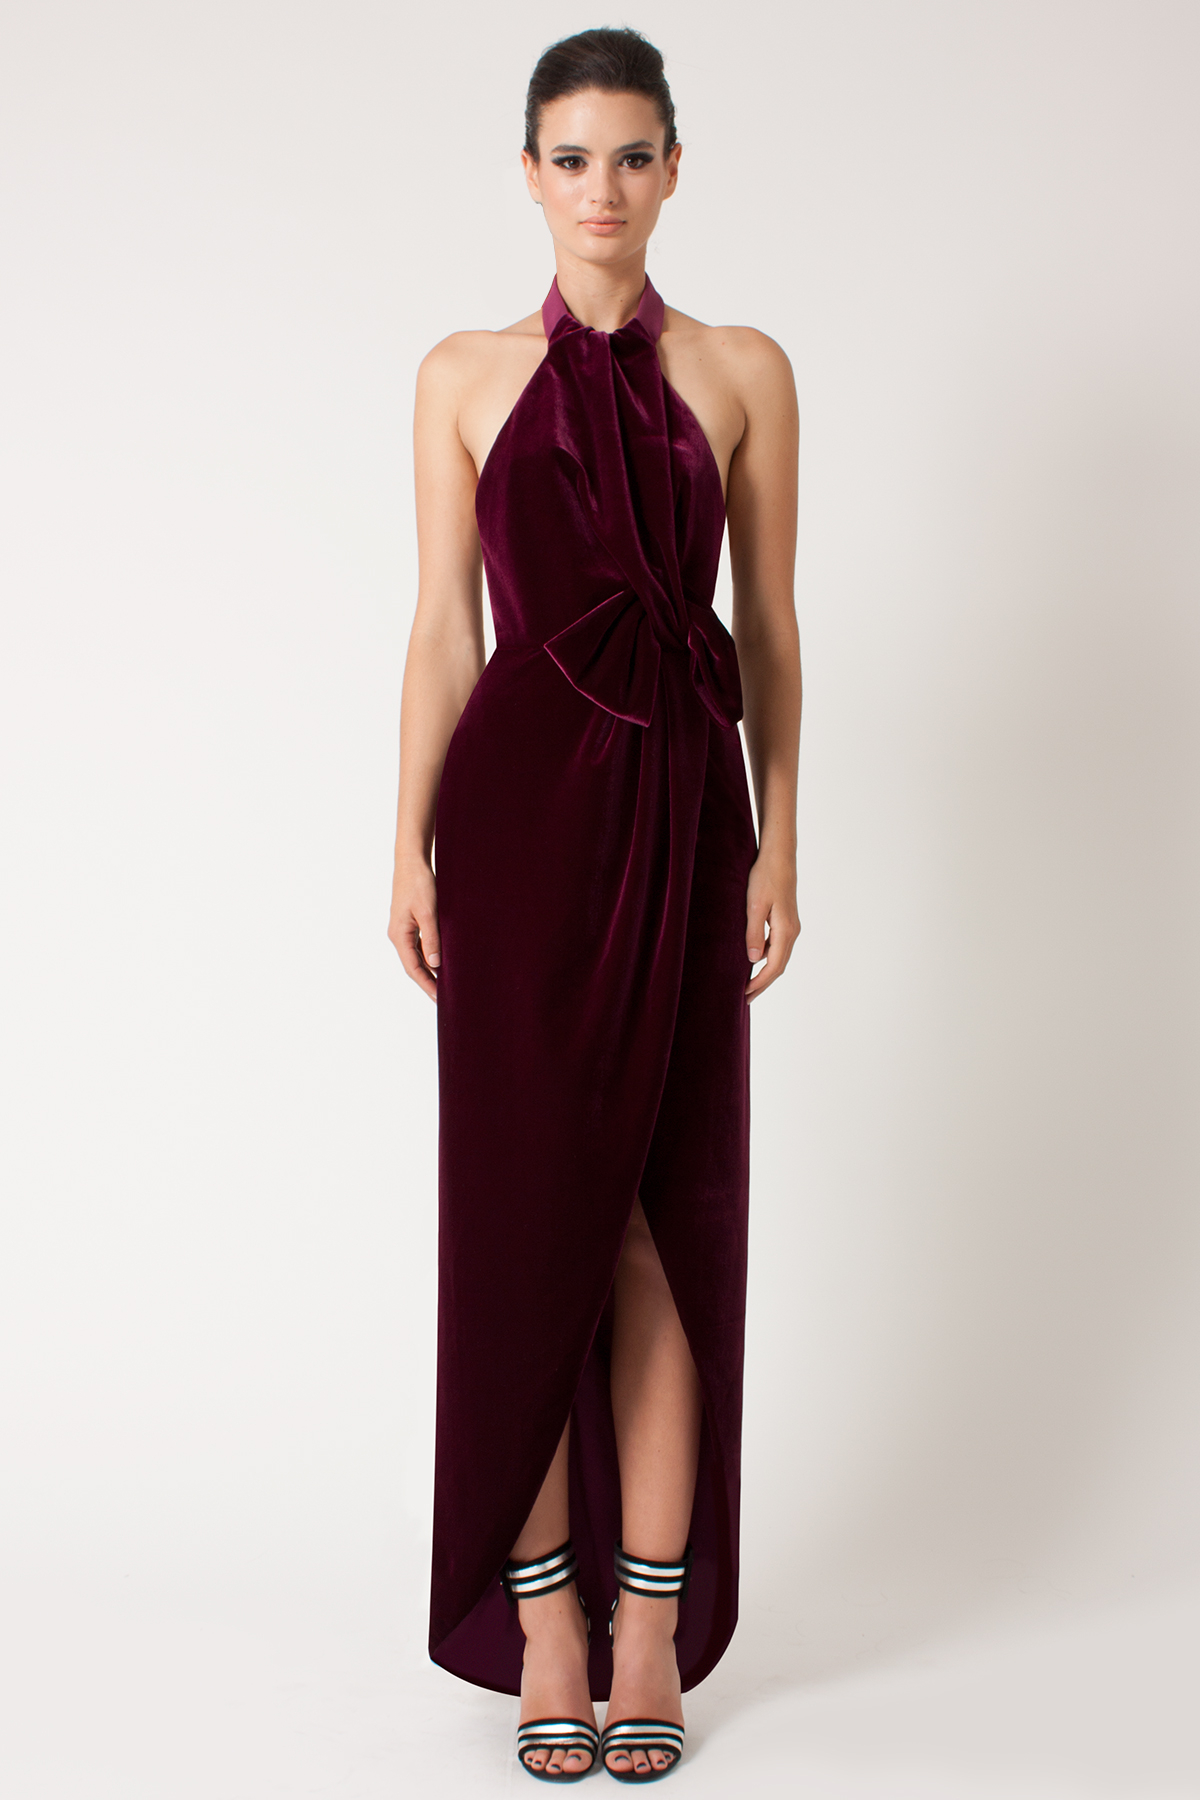 Lyst - Black Halo Admire Gown in Red